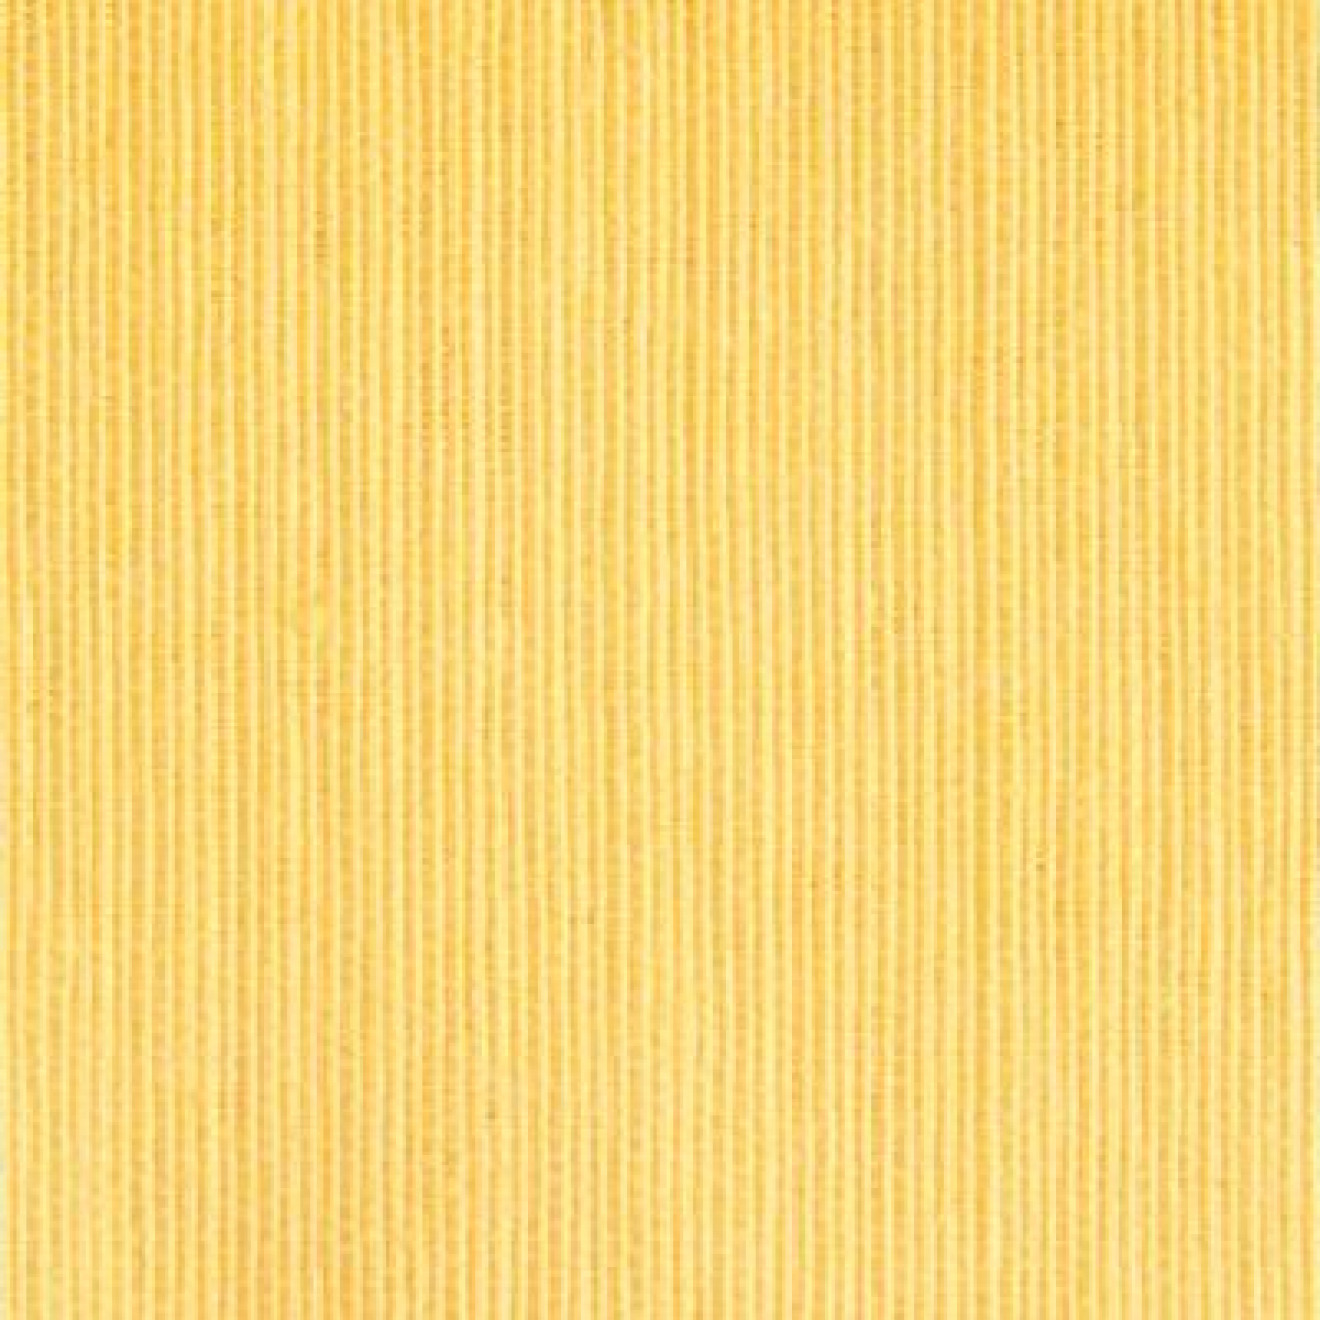 Dreieck - Acrylstoff Loneta Color 113